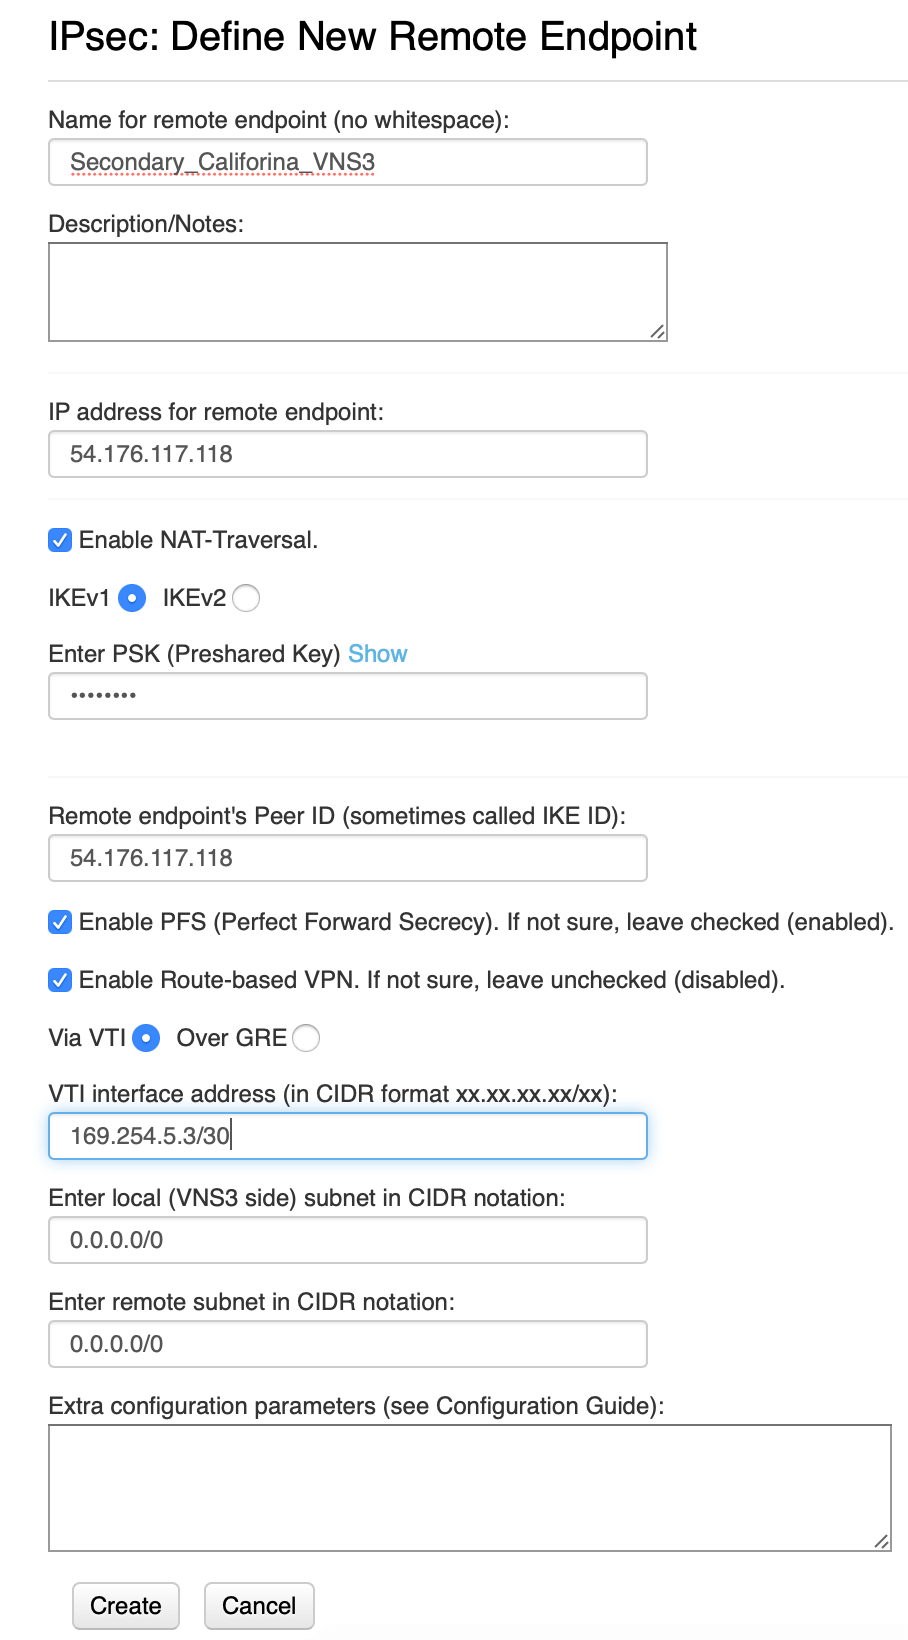 VNS3 customer to primary routes configuration